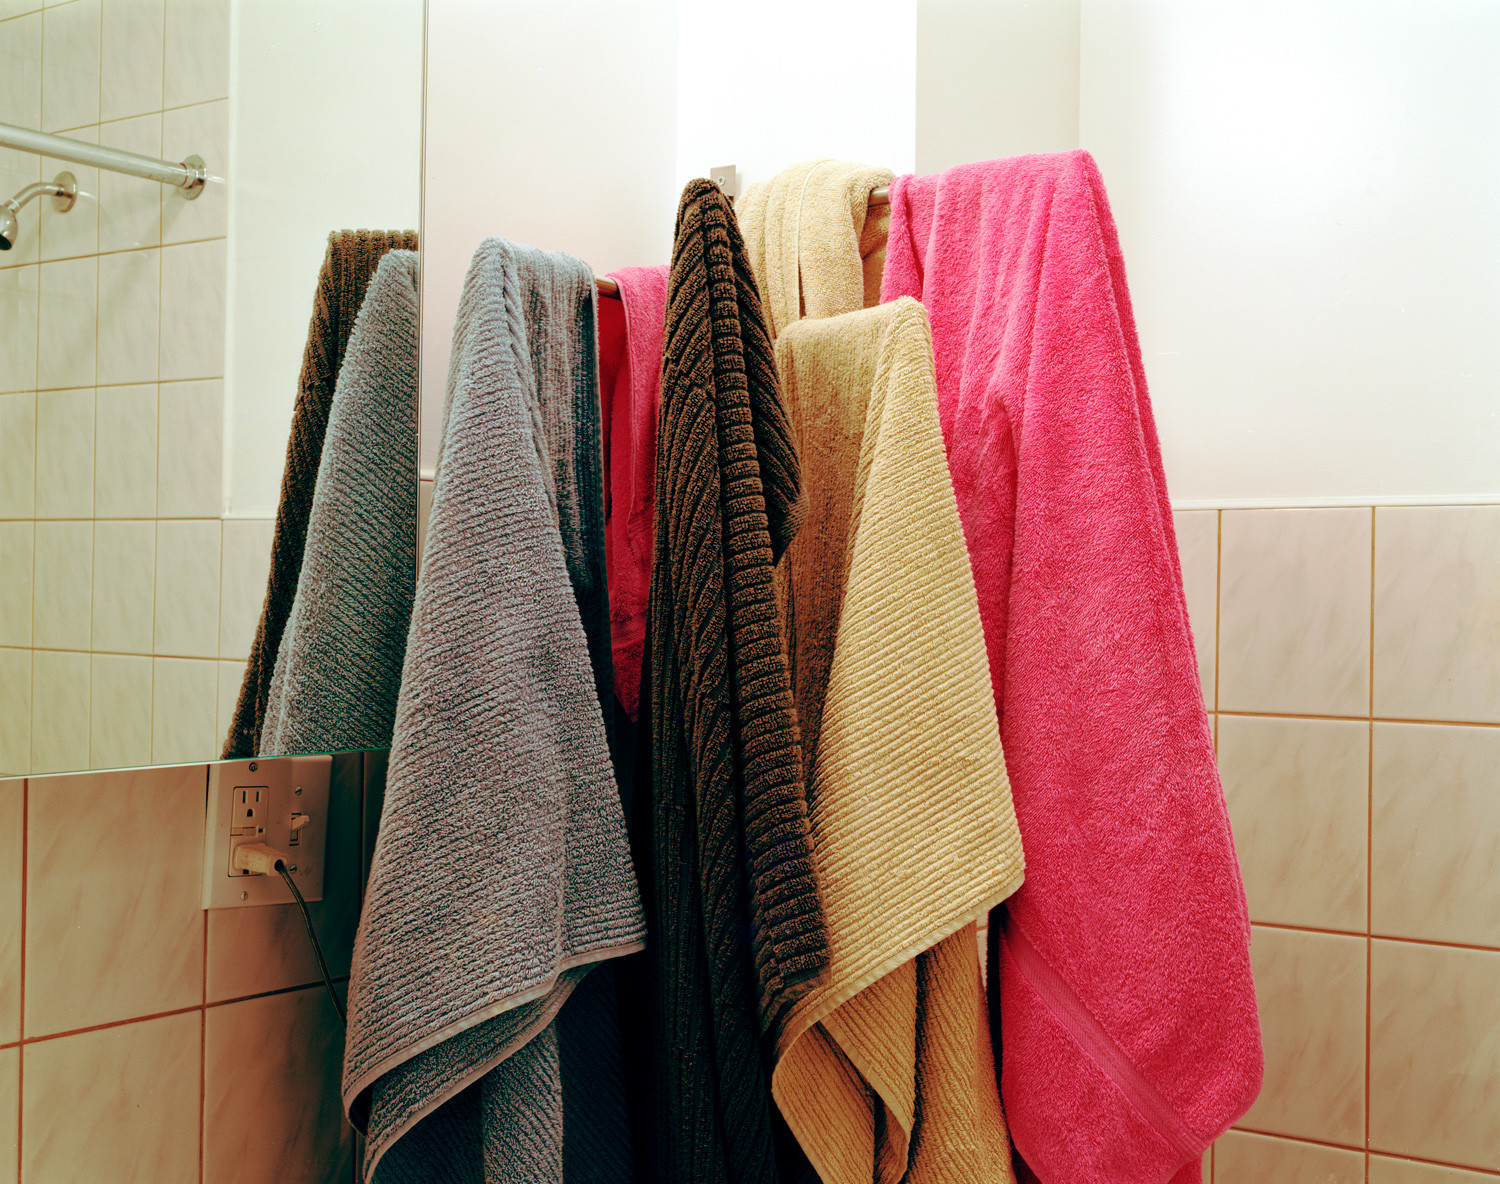 For some, sharing their towel with guests is not a problem but, for others, it is akin to sharing underwear.